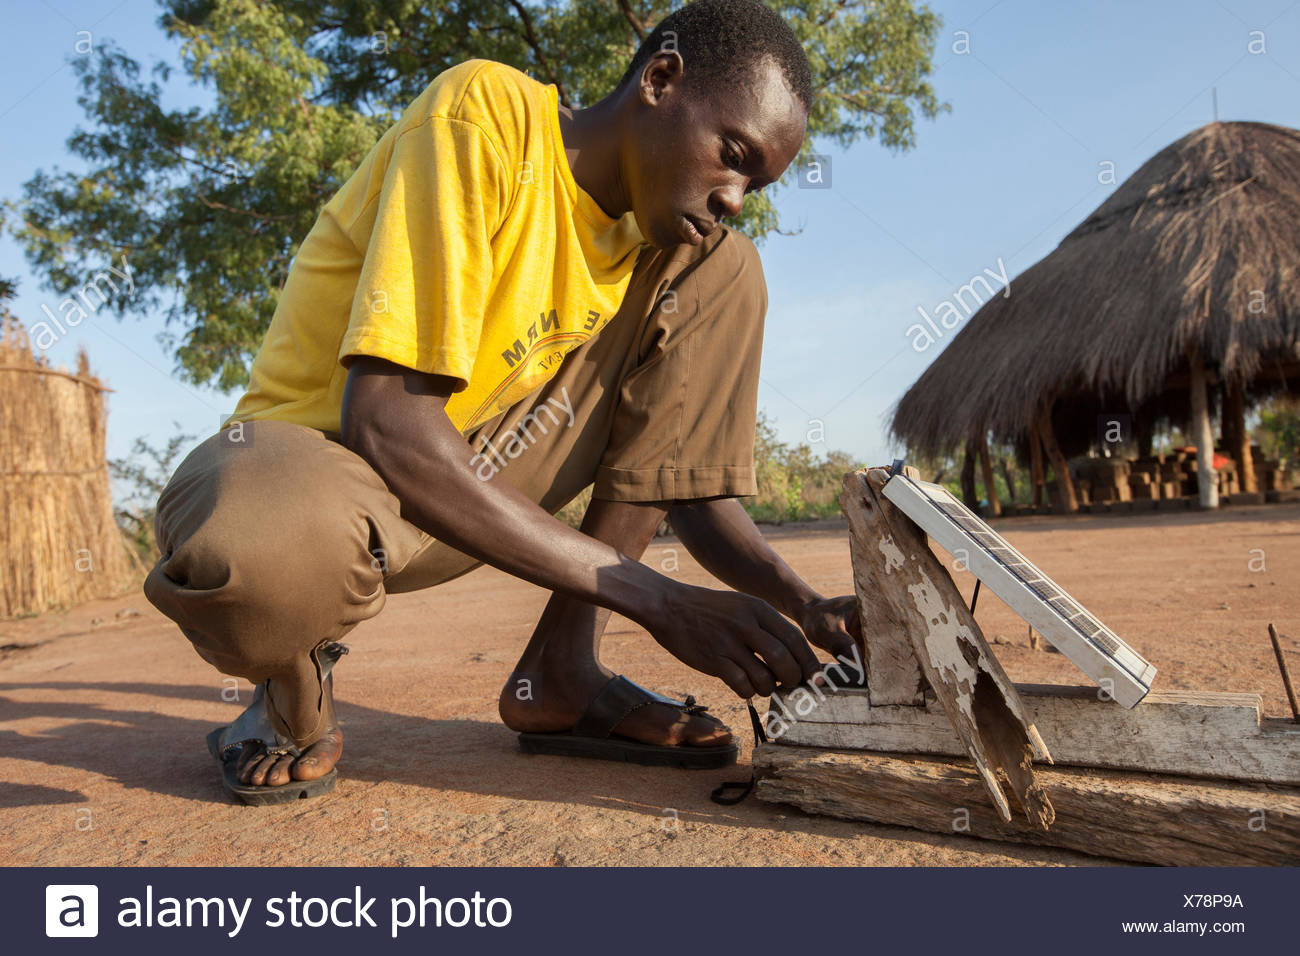 A young man uses a solar charger to power his mobile device. - Stock Image